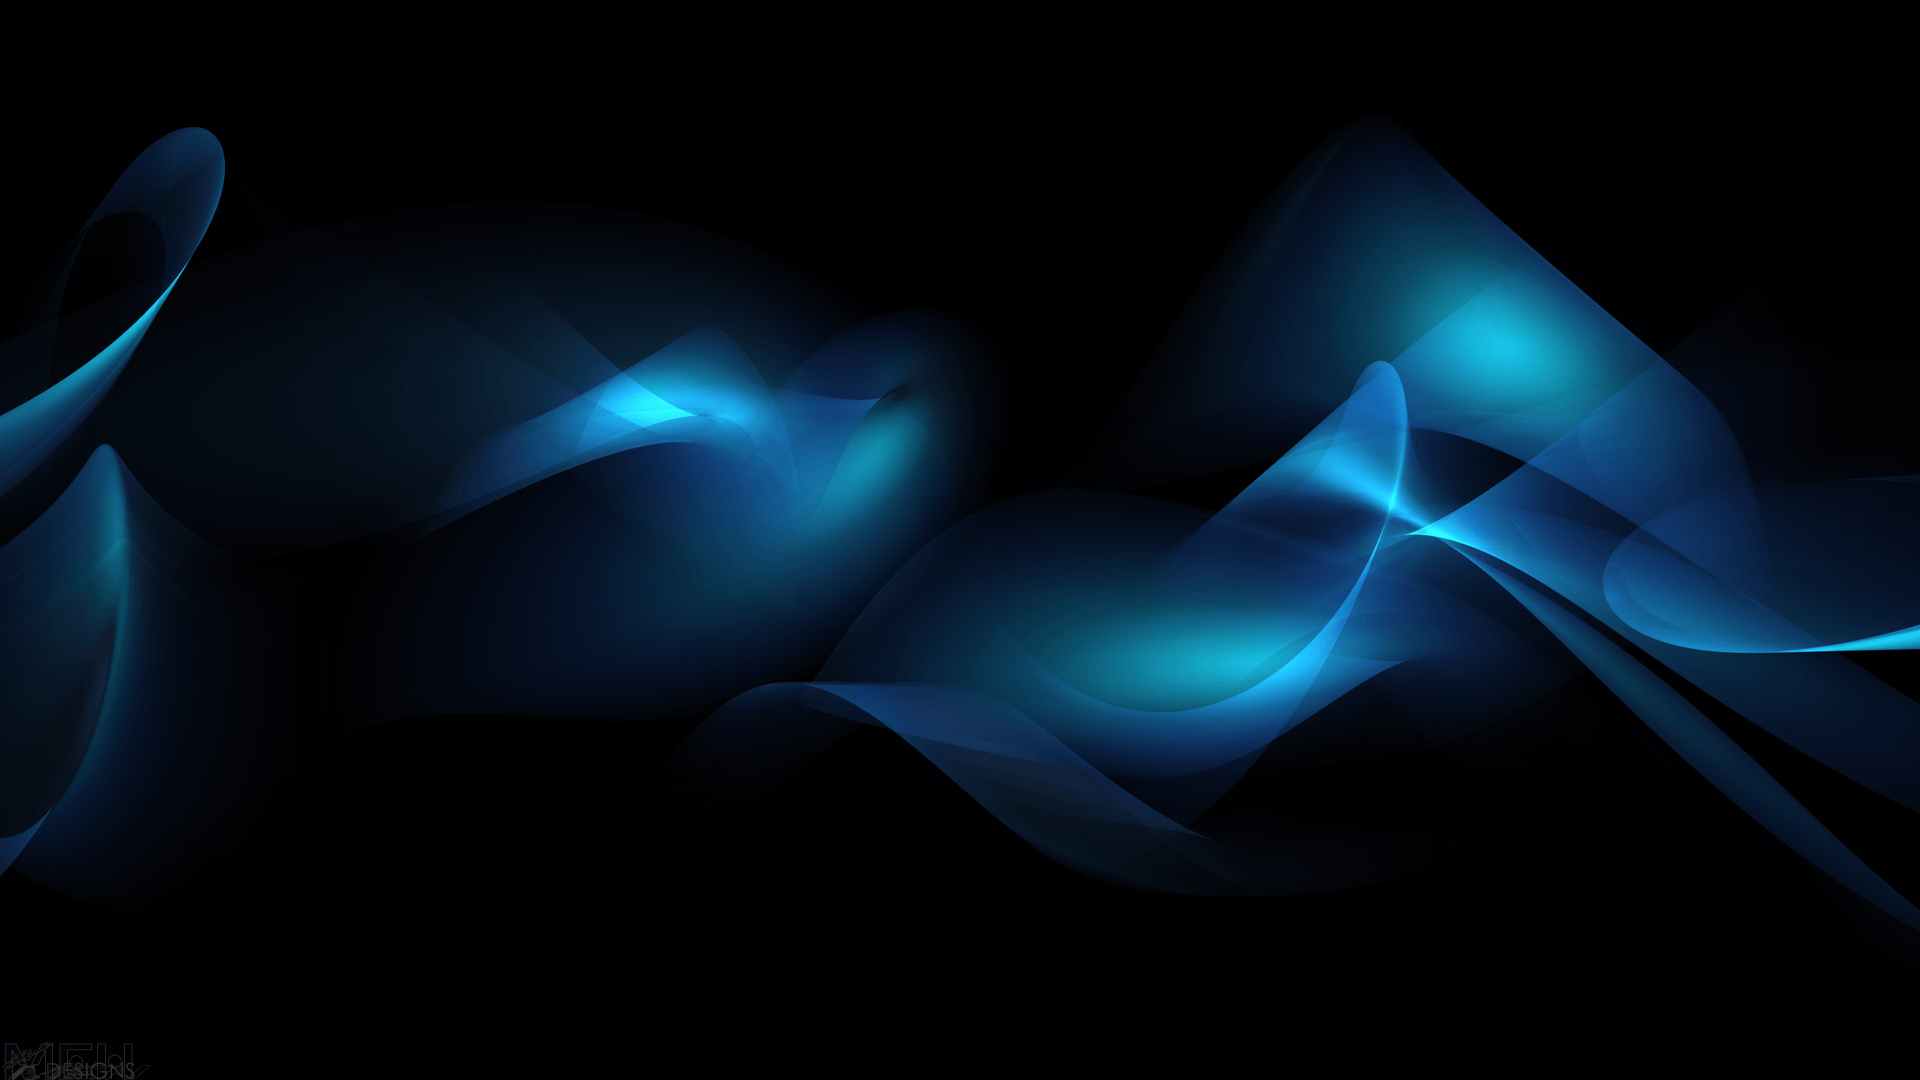 abstract blue wallpapers - wallpaper cave